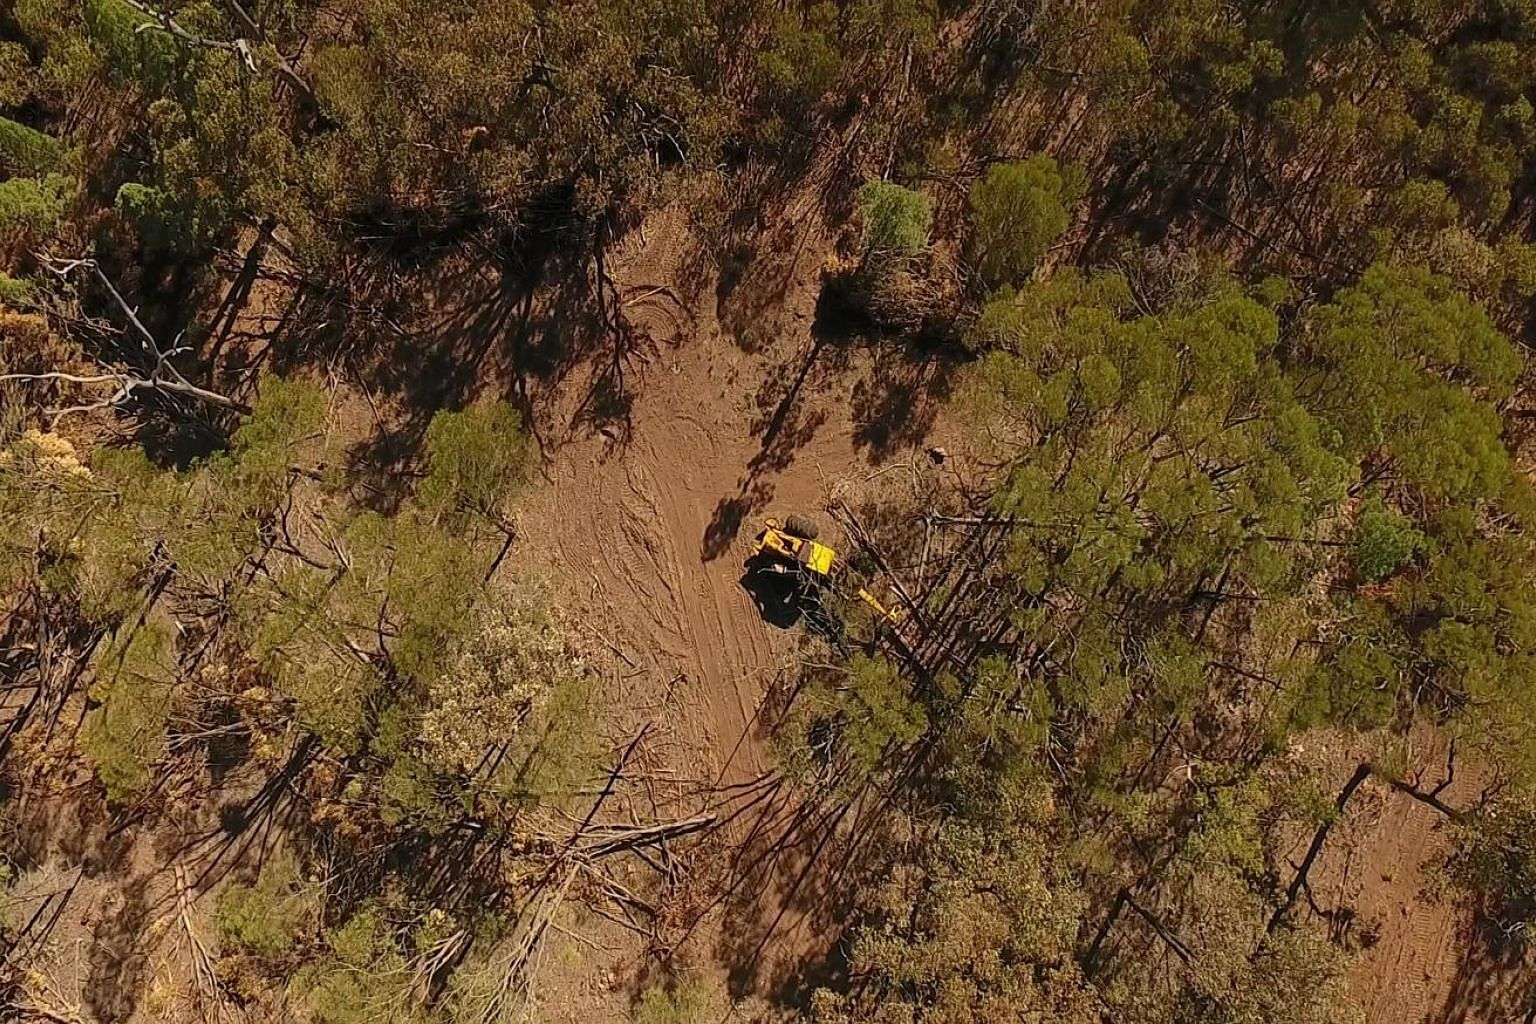 Bulldozing of land in Queensland. Experts say the Australian state, which has about 40 per cent of the country's forests, has been clearing its bushland at a faster rate than Brazil's cutting down of its Amazon rainforest. A report by the Climate Cou